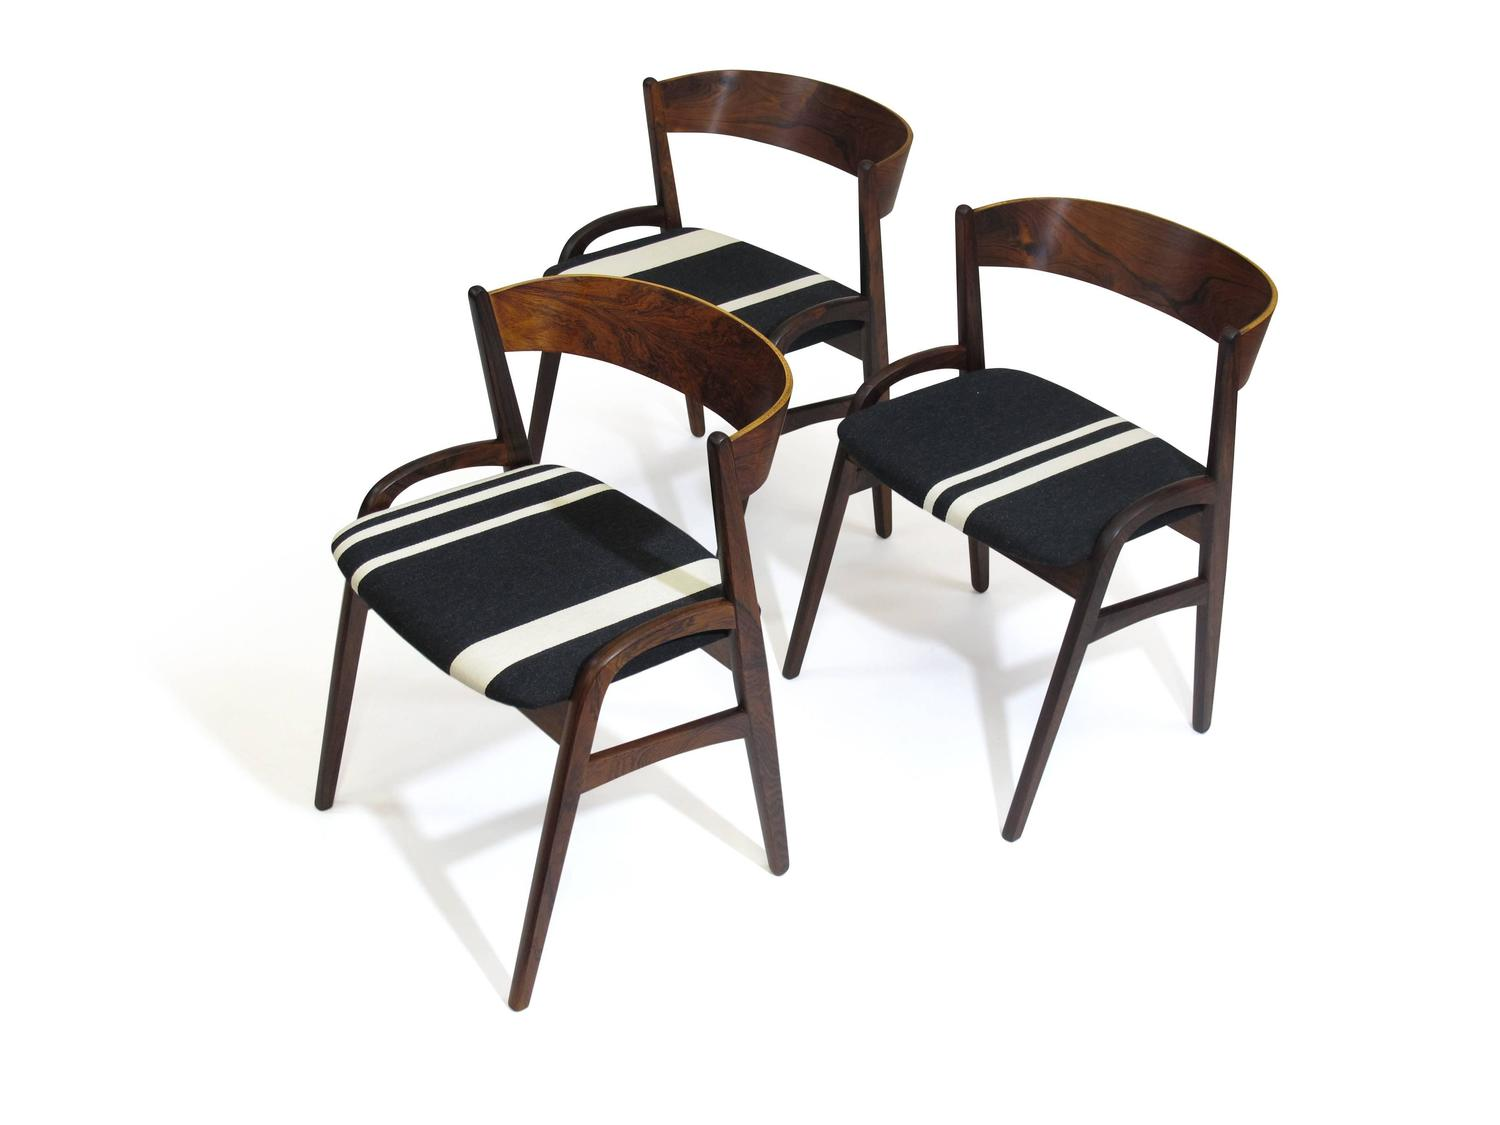 six rosewood dining chairs in black white striped